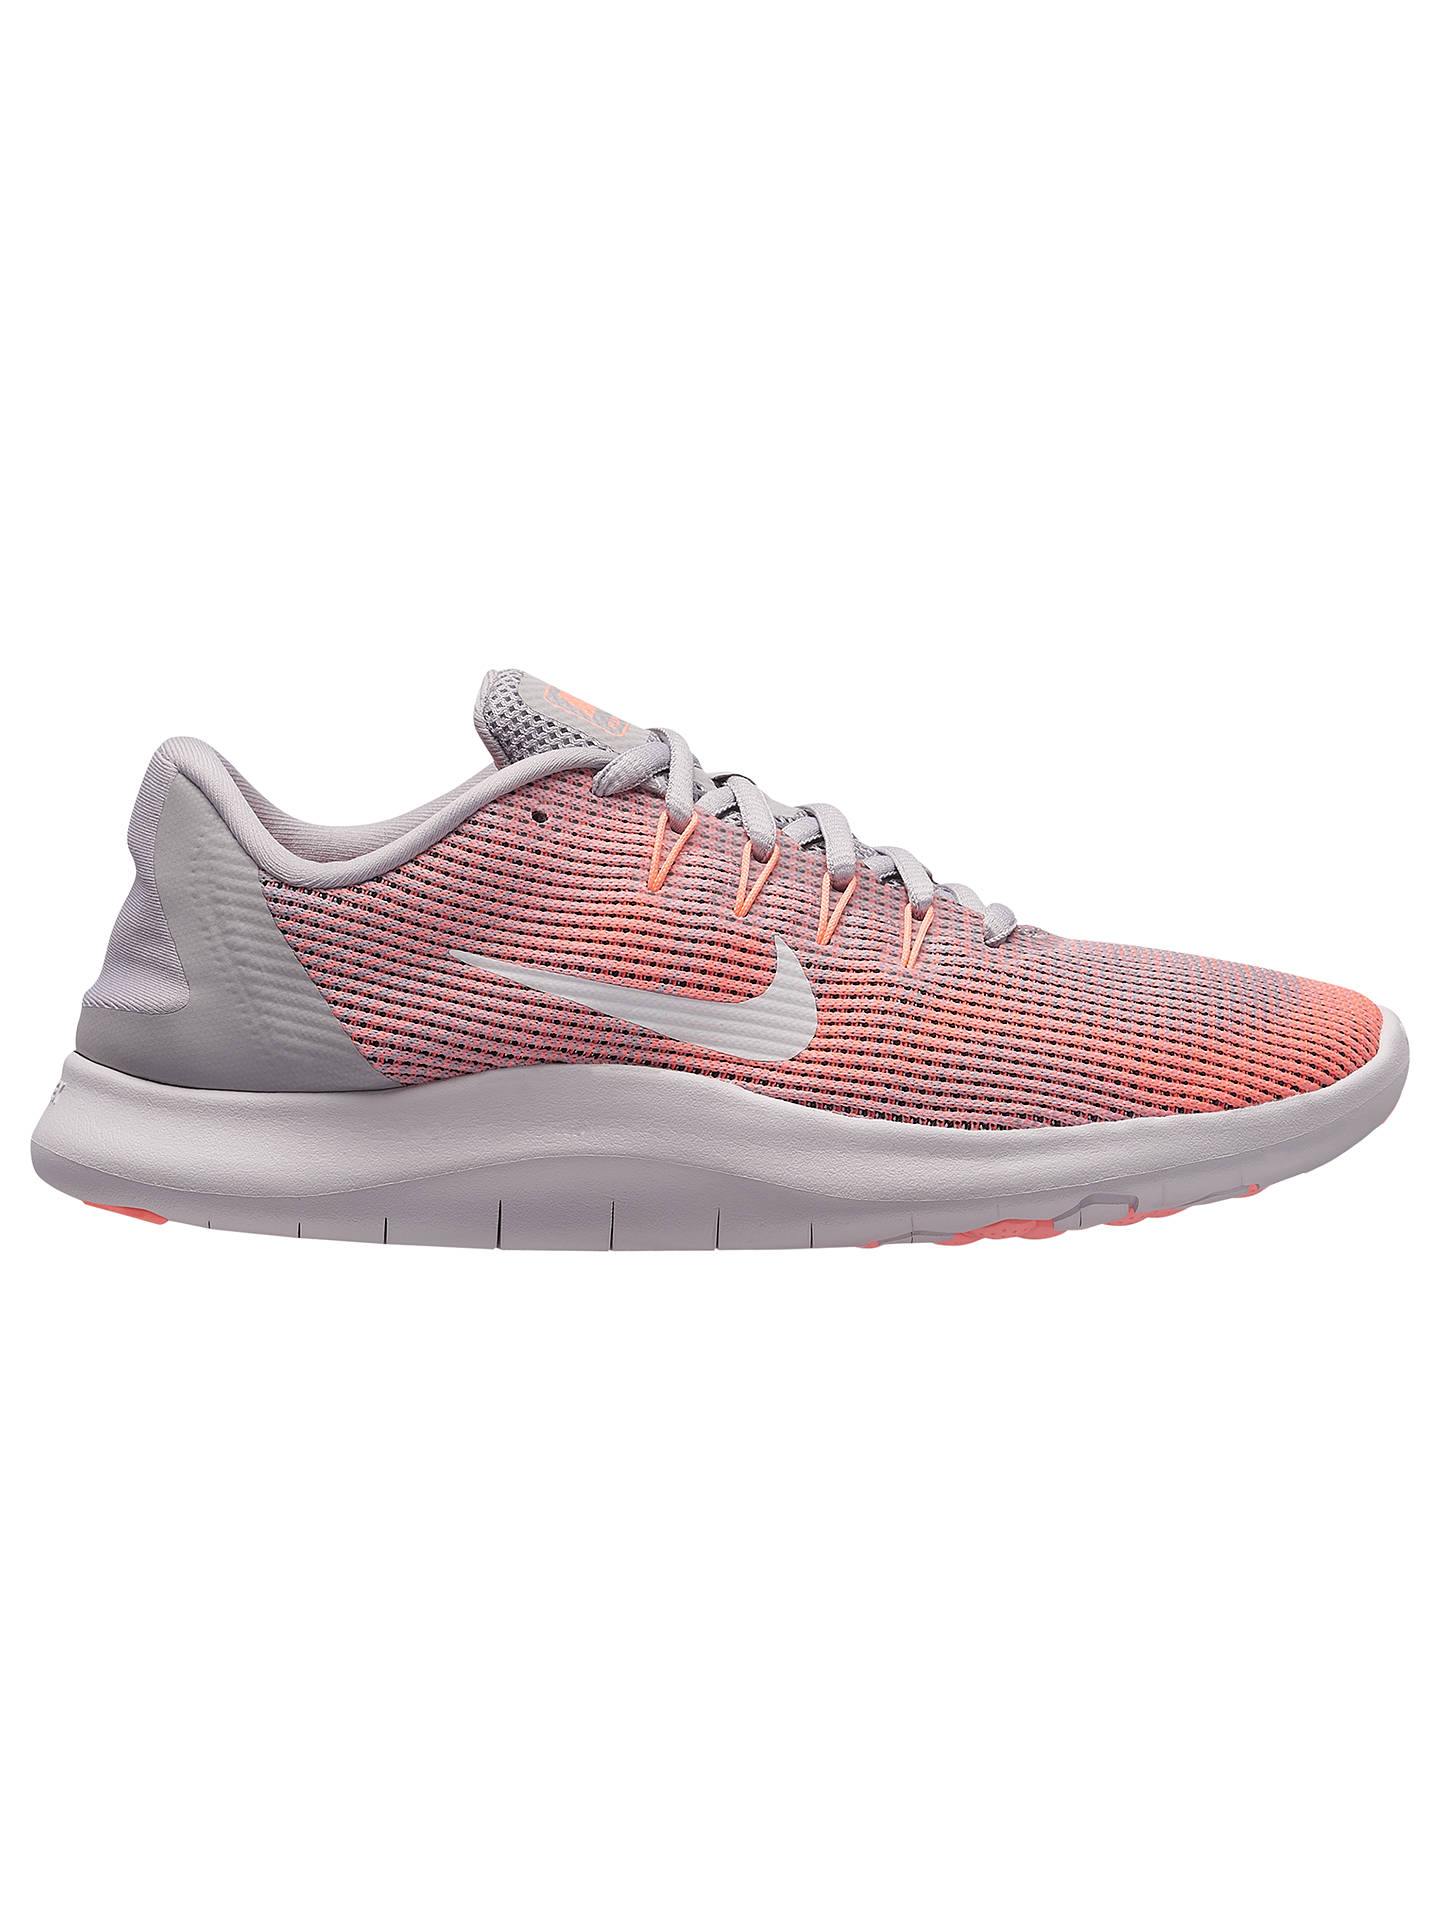 faa1b881c6f Buy Nike Flex RN 2018 Women s Running Shoe